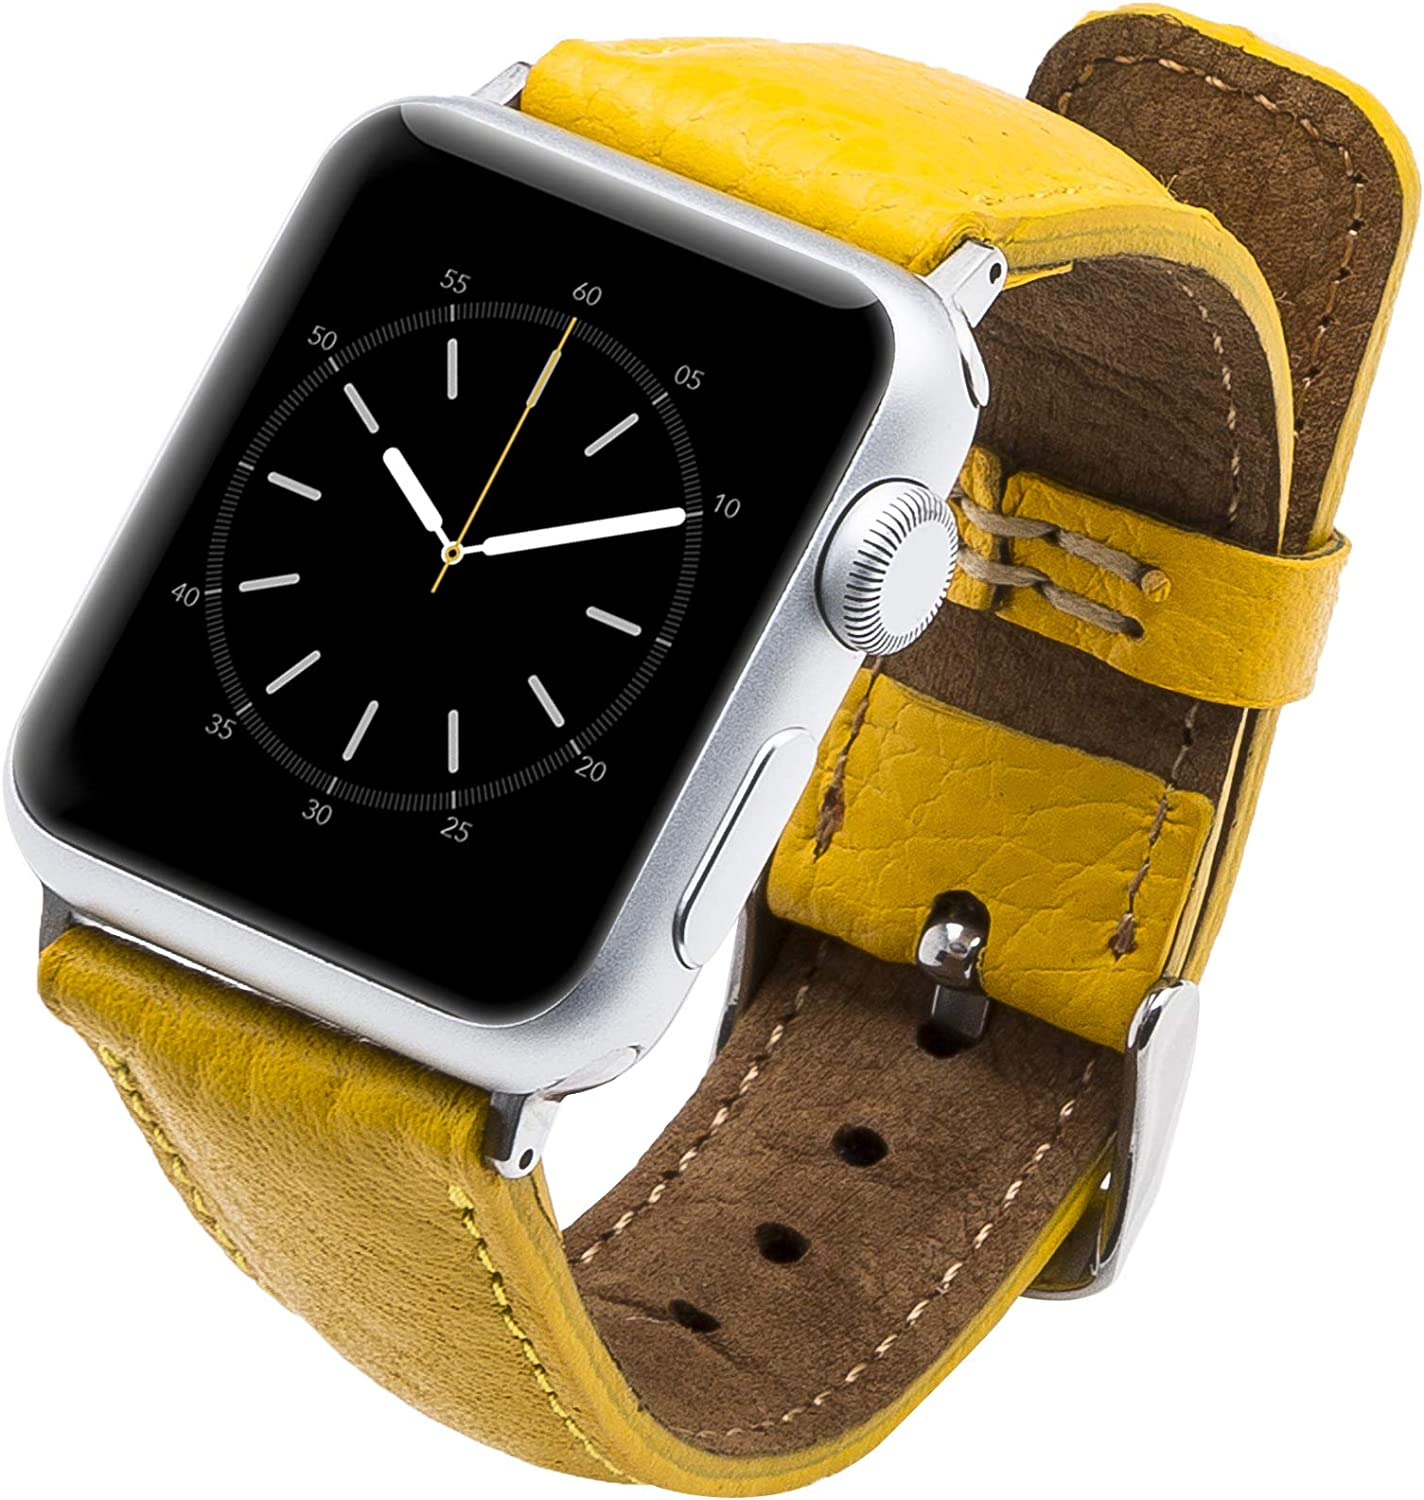 Venito Tuscany Leather Watch Band Compatible with Apple Watch 38mm 40mm - Watch Strap Designed for iwatch Series 1 2 3 4 5 6 (Yellow w/Black Connector & Clasp)